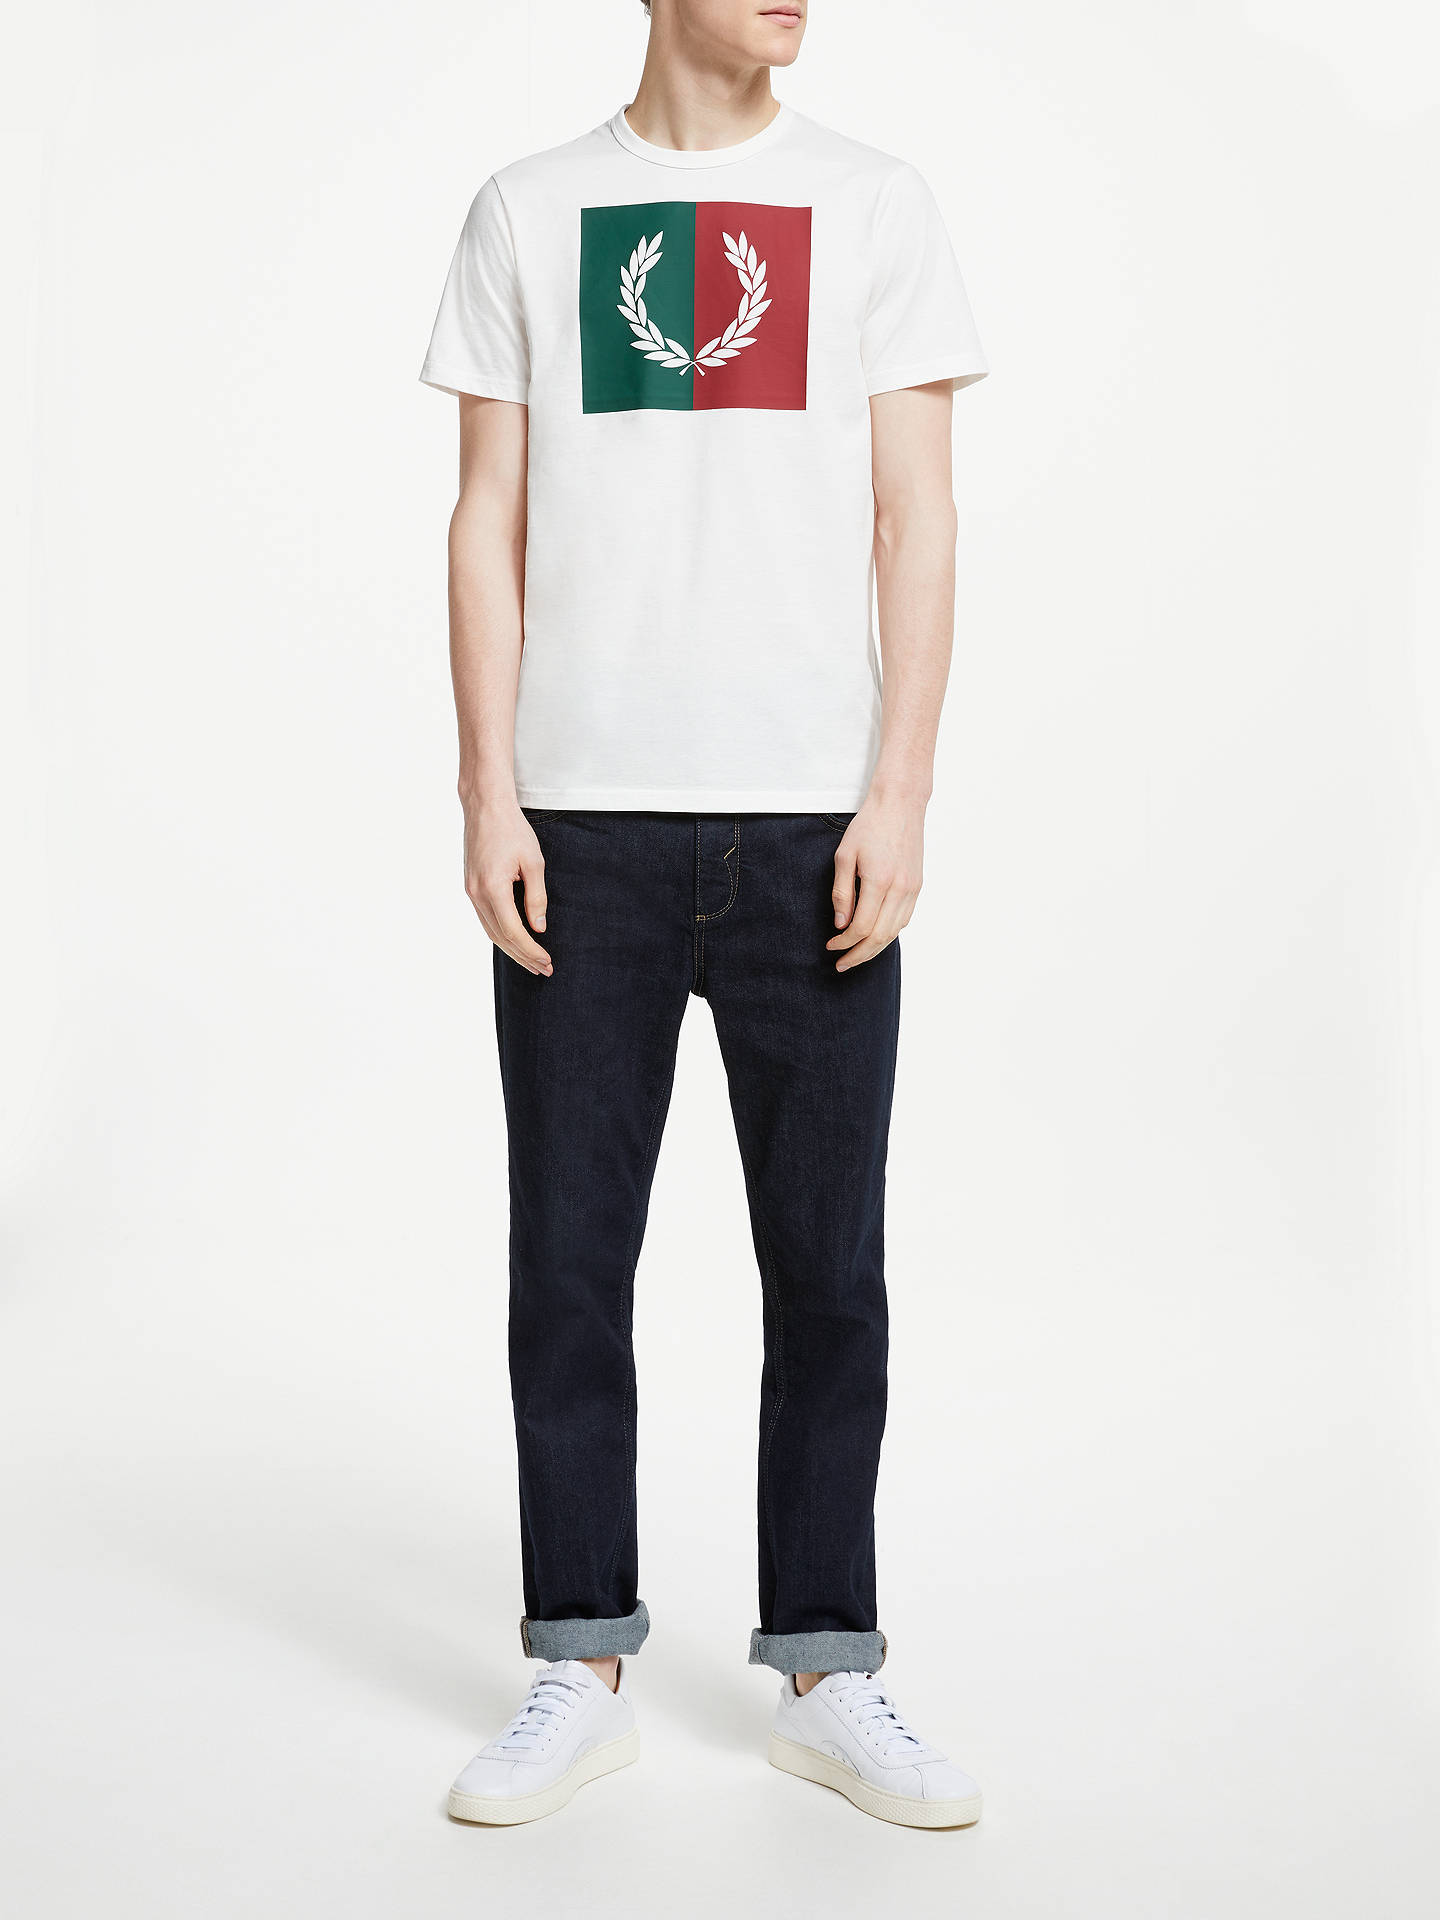 33984847756eb Fred Perry Split Laurel Wreath T-Shirt, Snow White